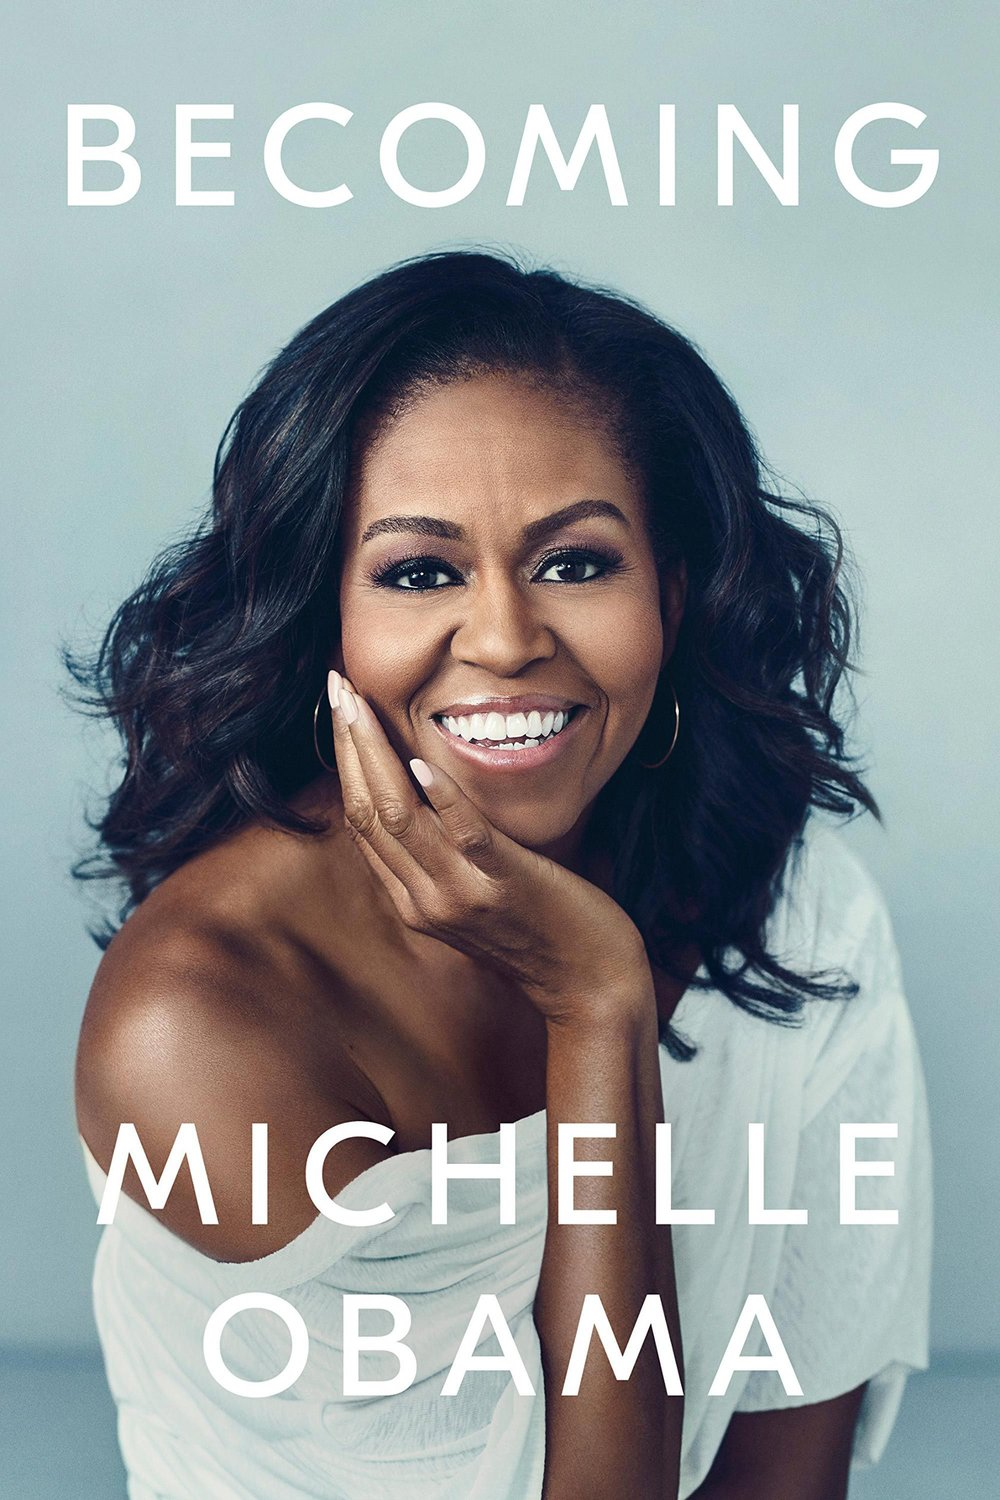 Inspiring Books By Women - Becoming By Michelle Obama